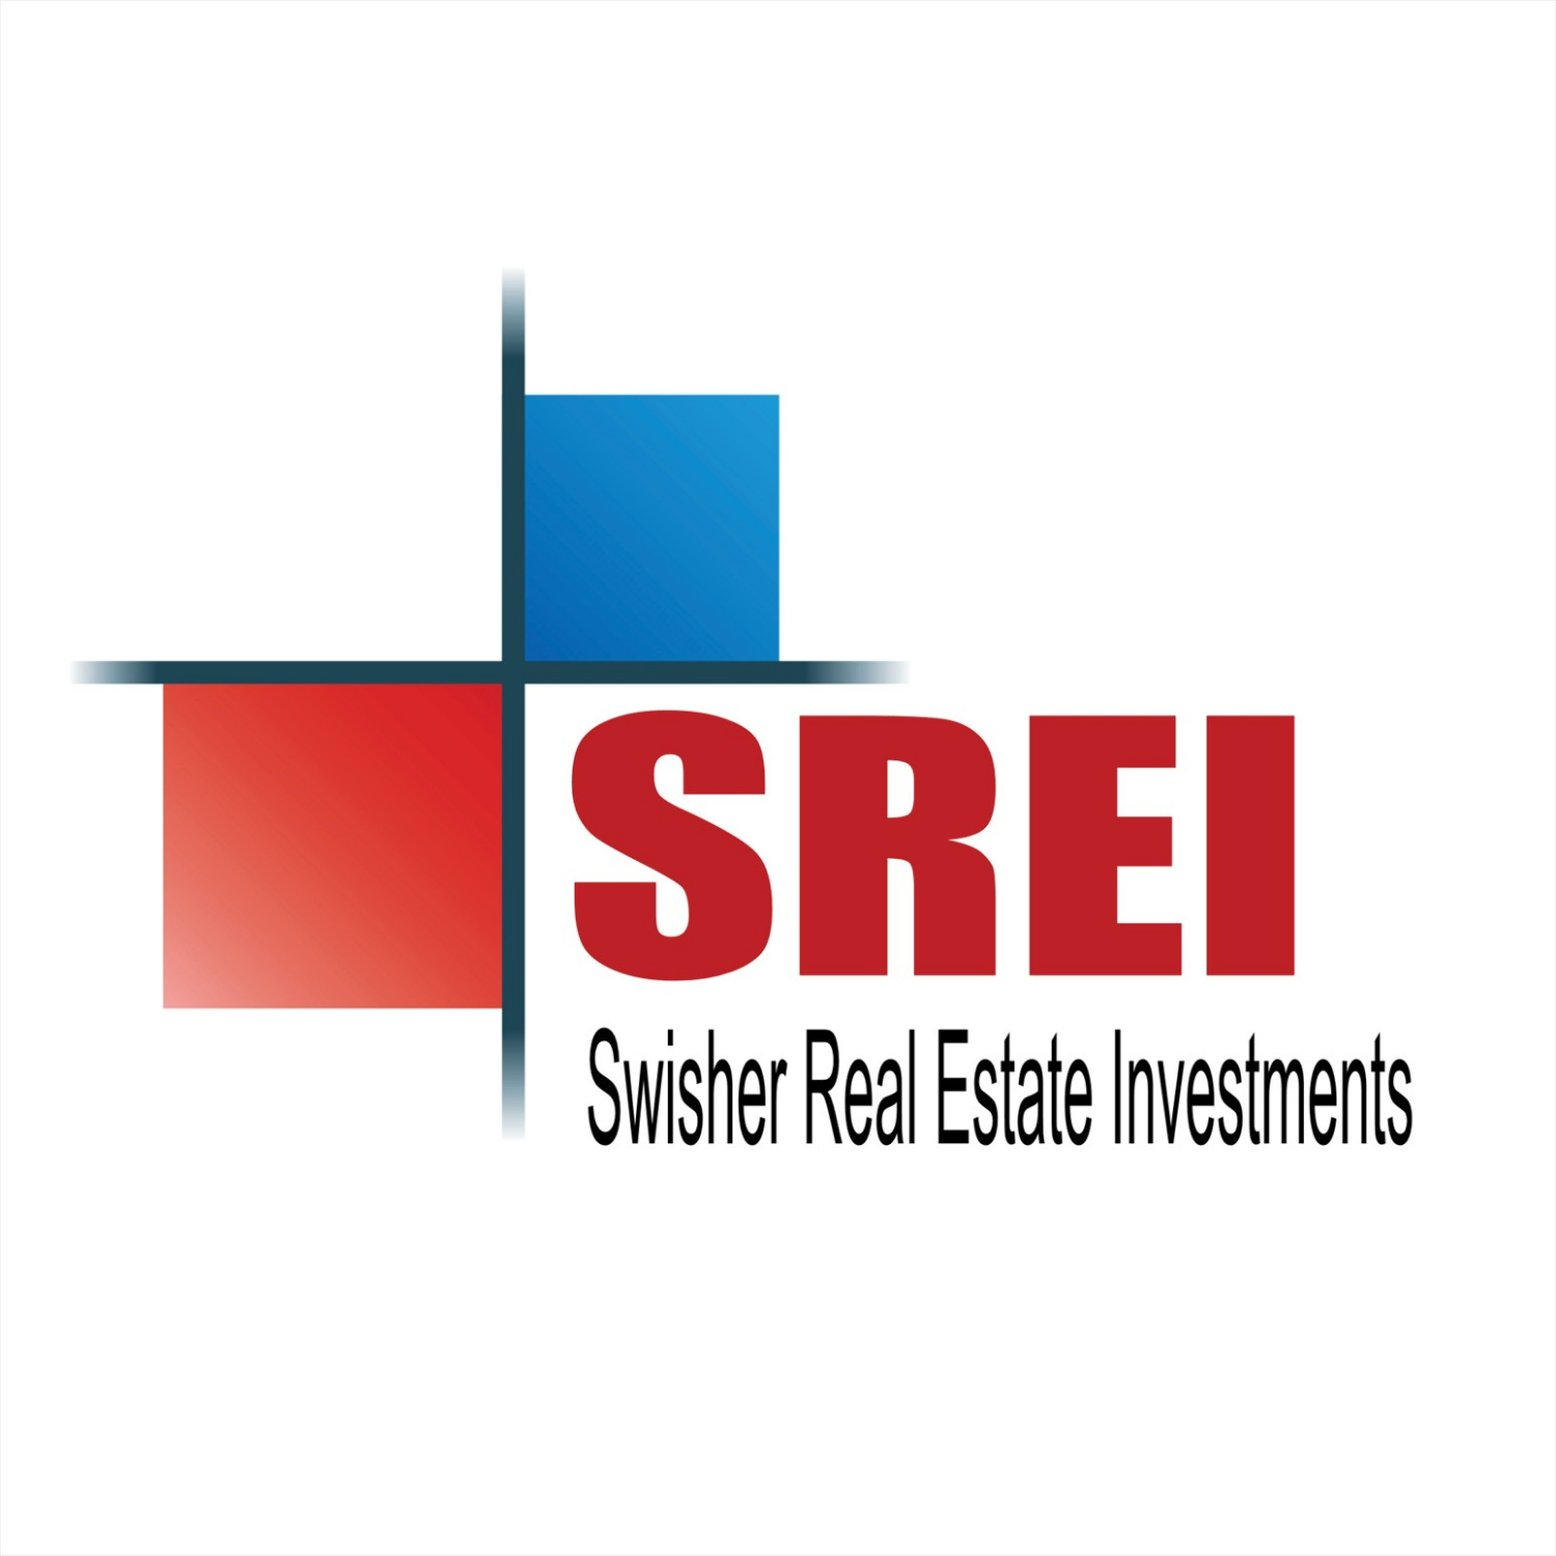 Swisher Real Estate Investments